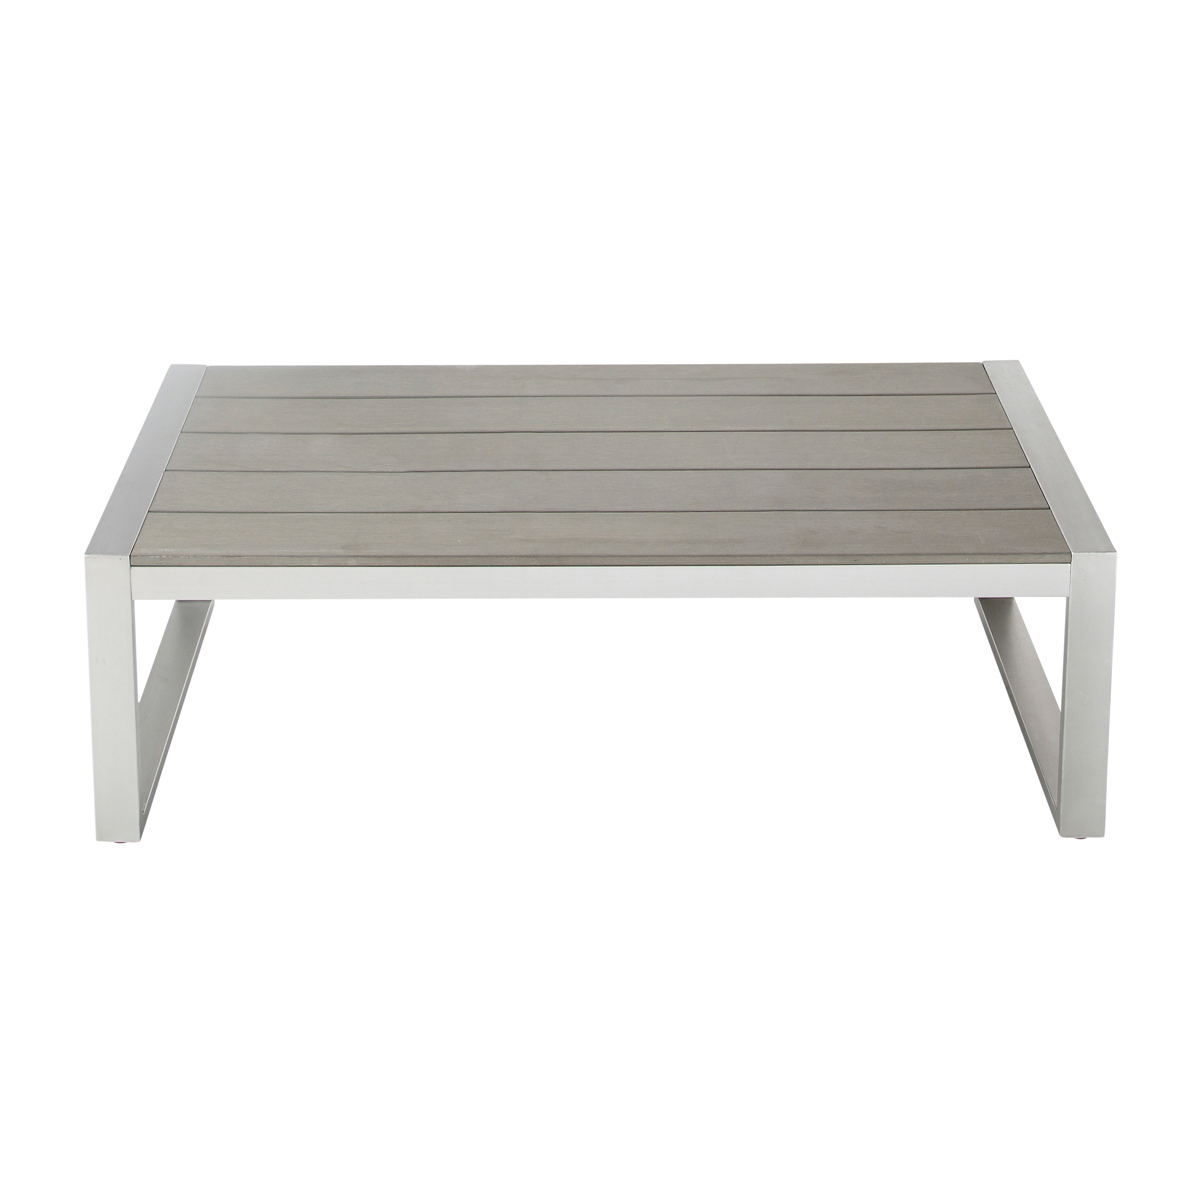 Photo table basse de jardin - Table basse de jardin ...